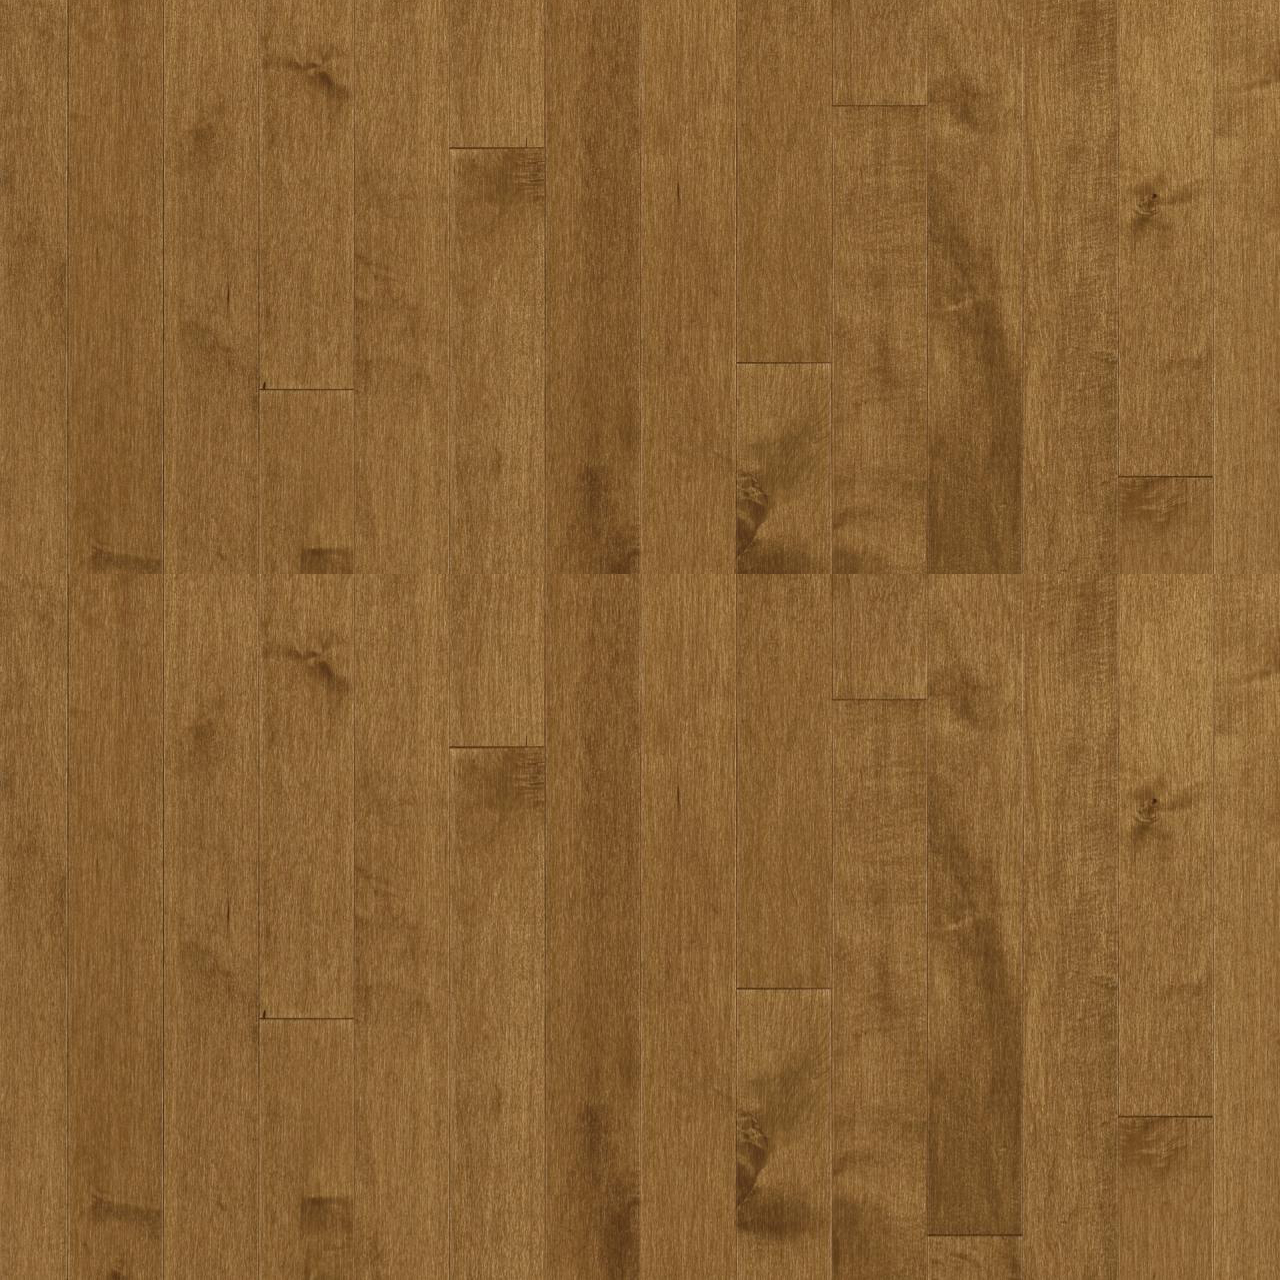 wood floors by jbw reviews